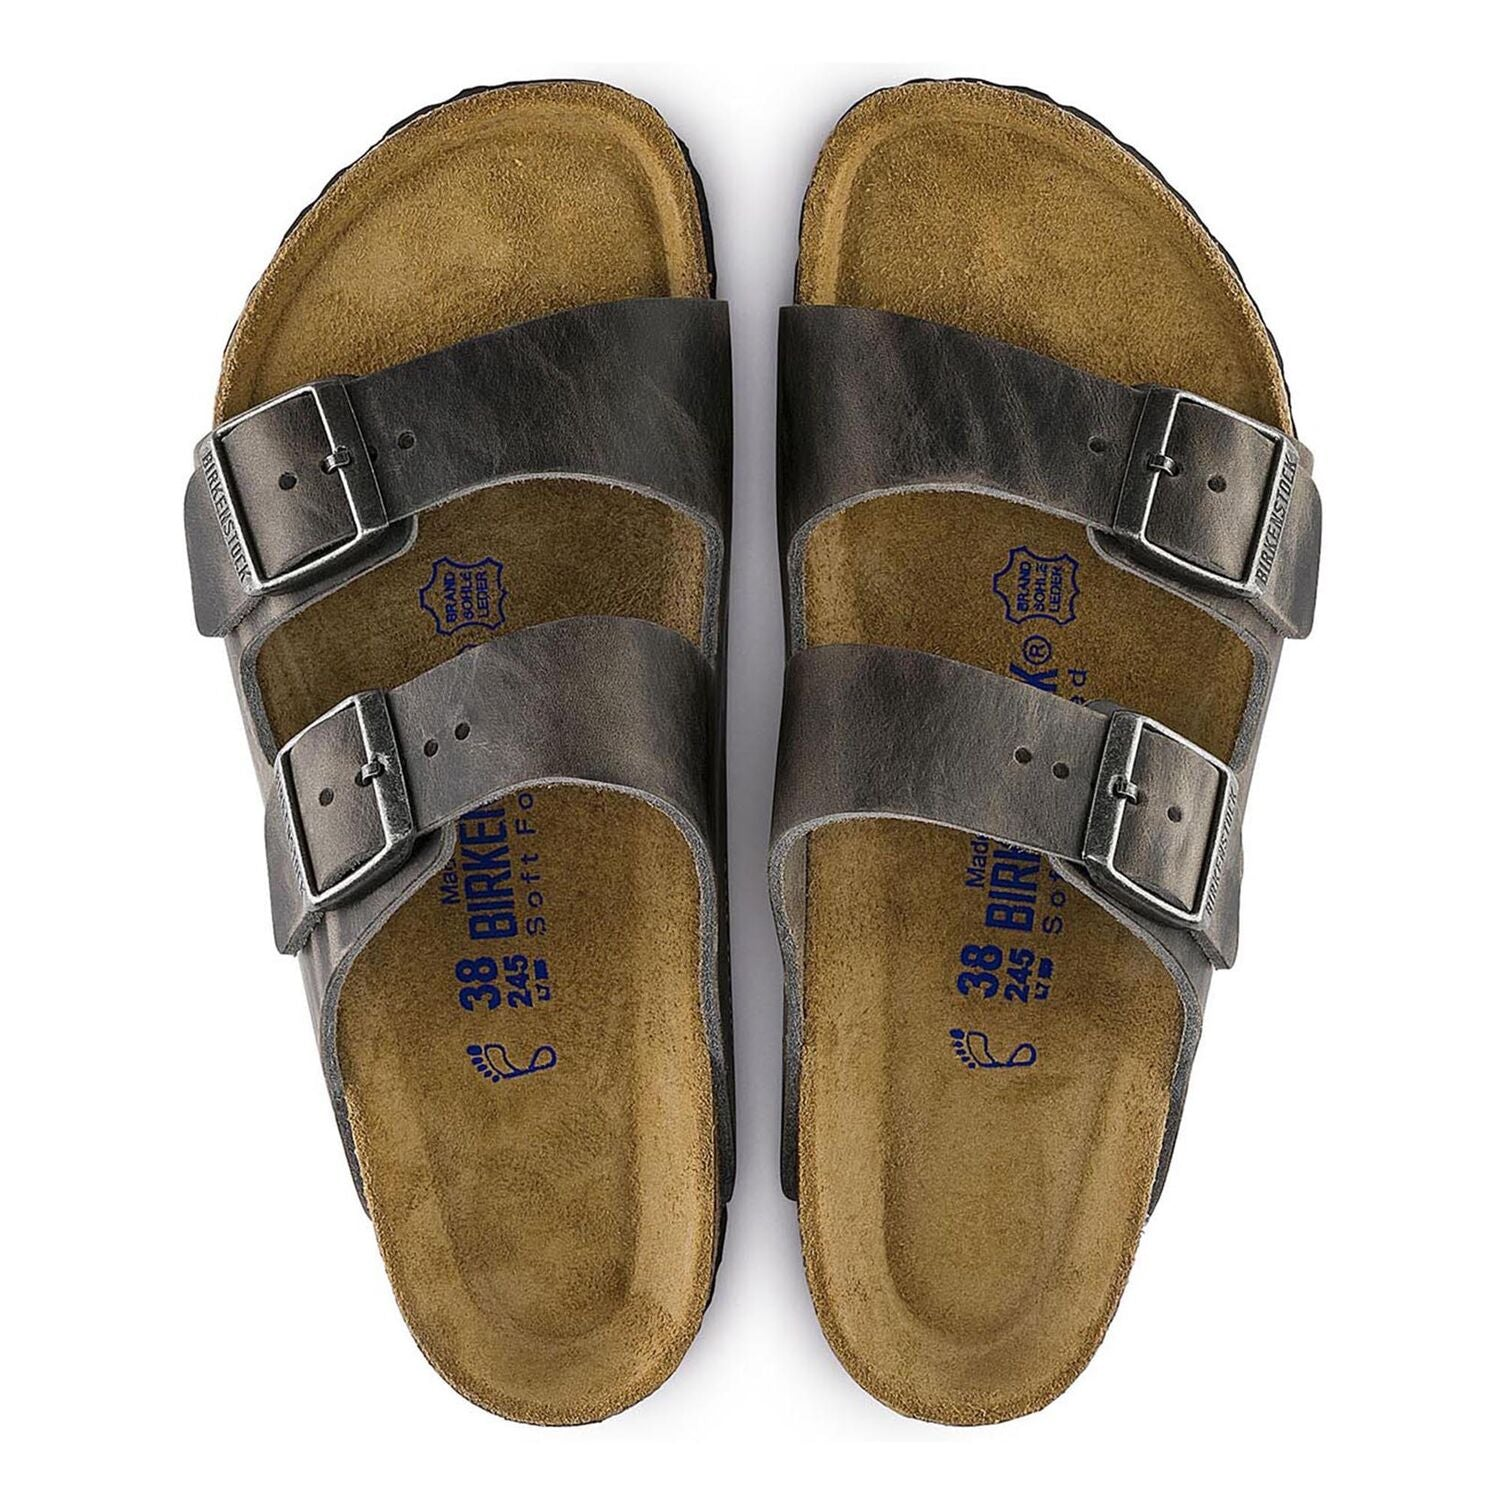 BIRKENSTOCK ARIZONA IRON OILED LEATHER REGULAR SOFT FOOTBED getset-footwear.myshopify.com